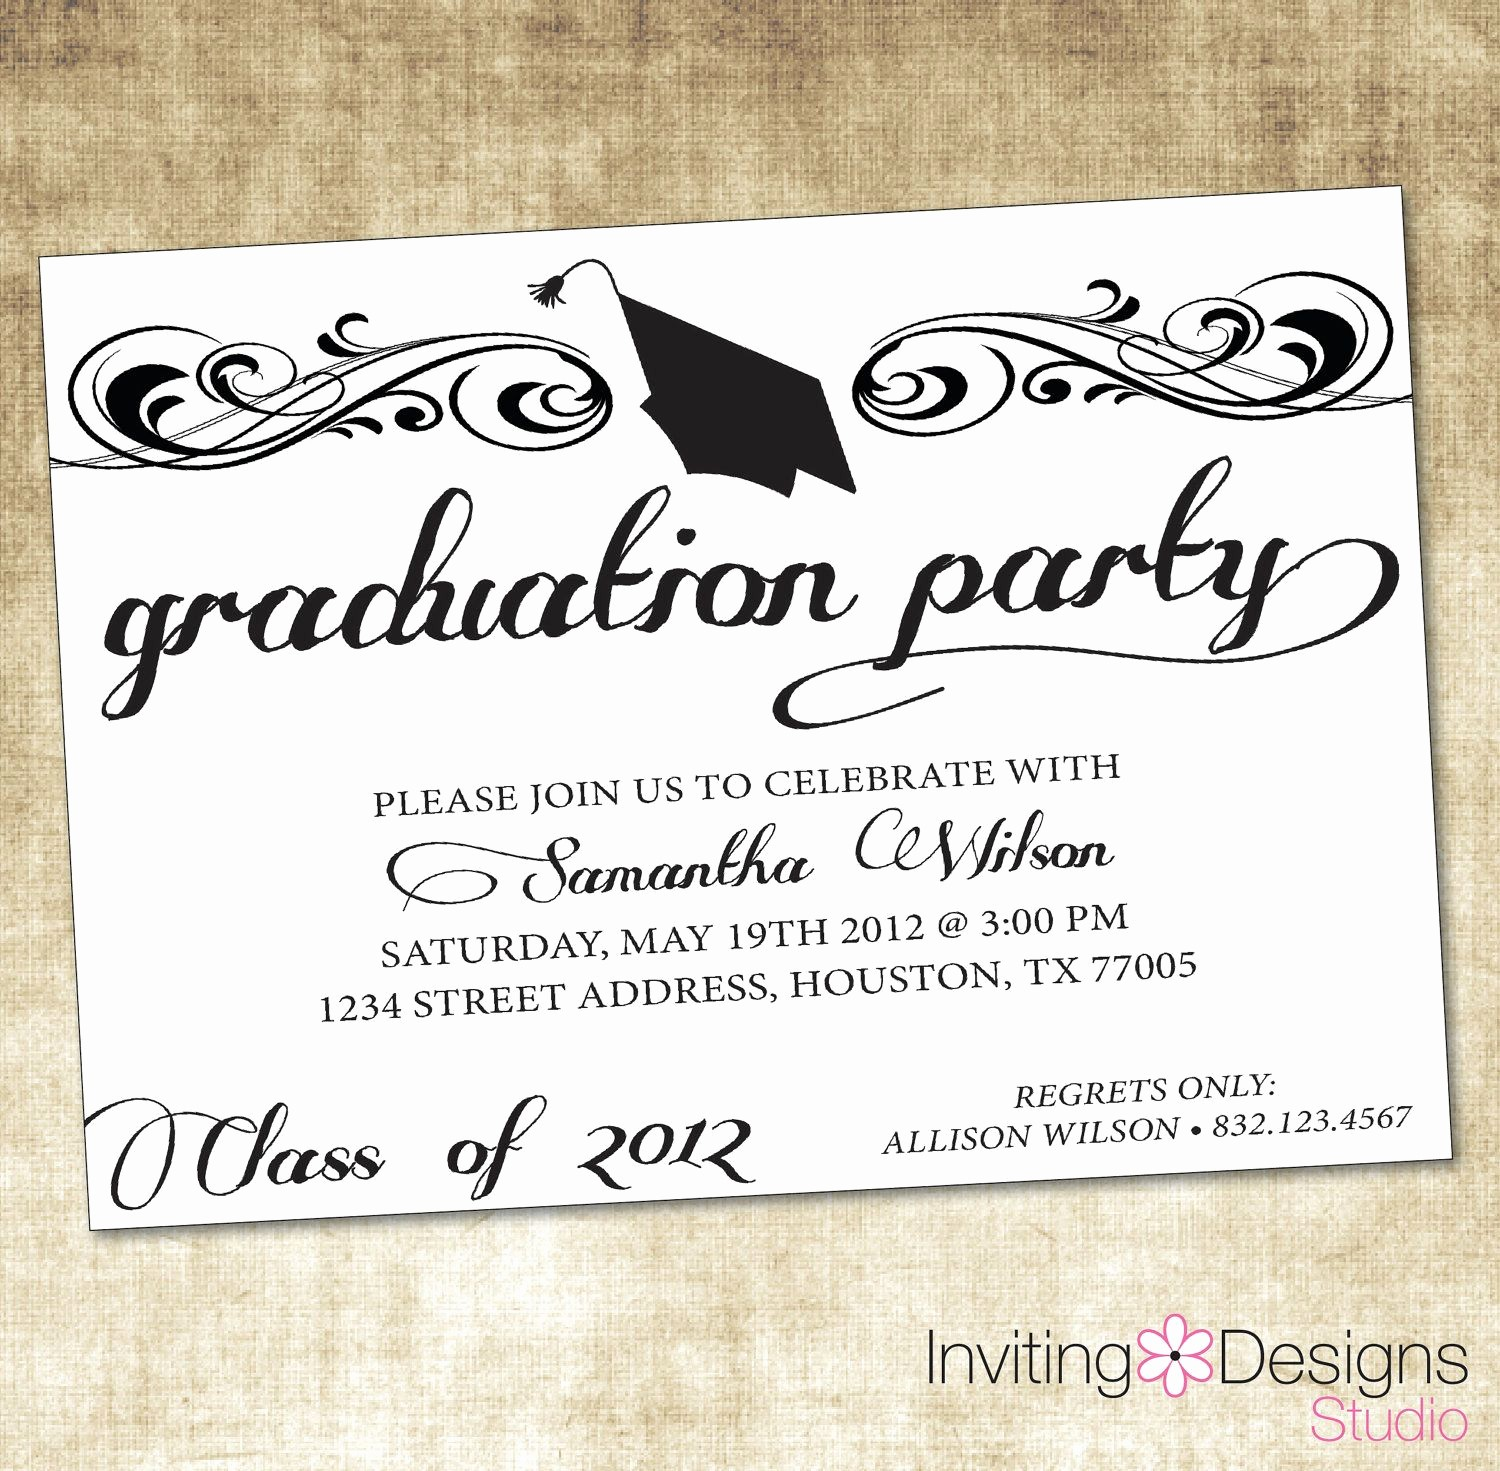 Free Graduation Party Invitation Template Beautiful Image Result for Graduation Party Invitation Wording Ideas